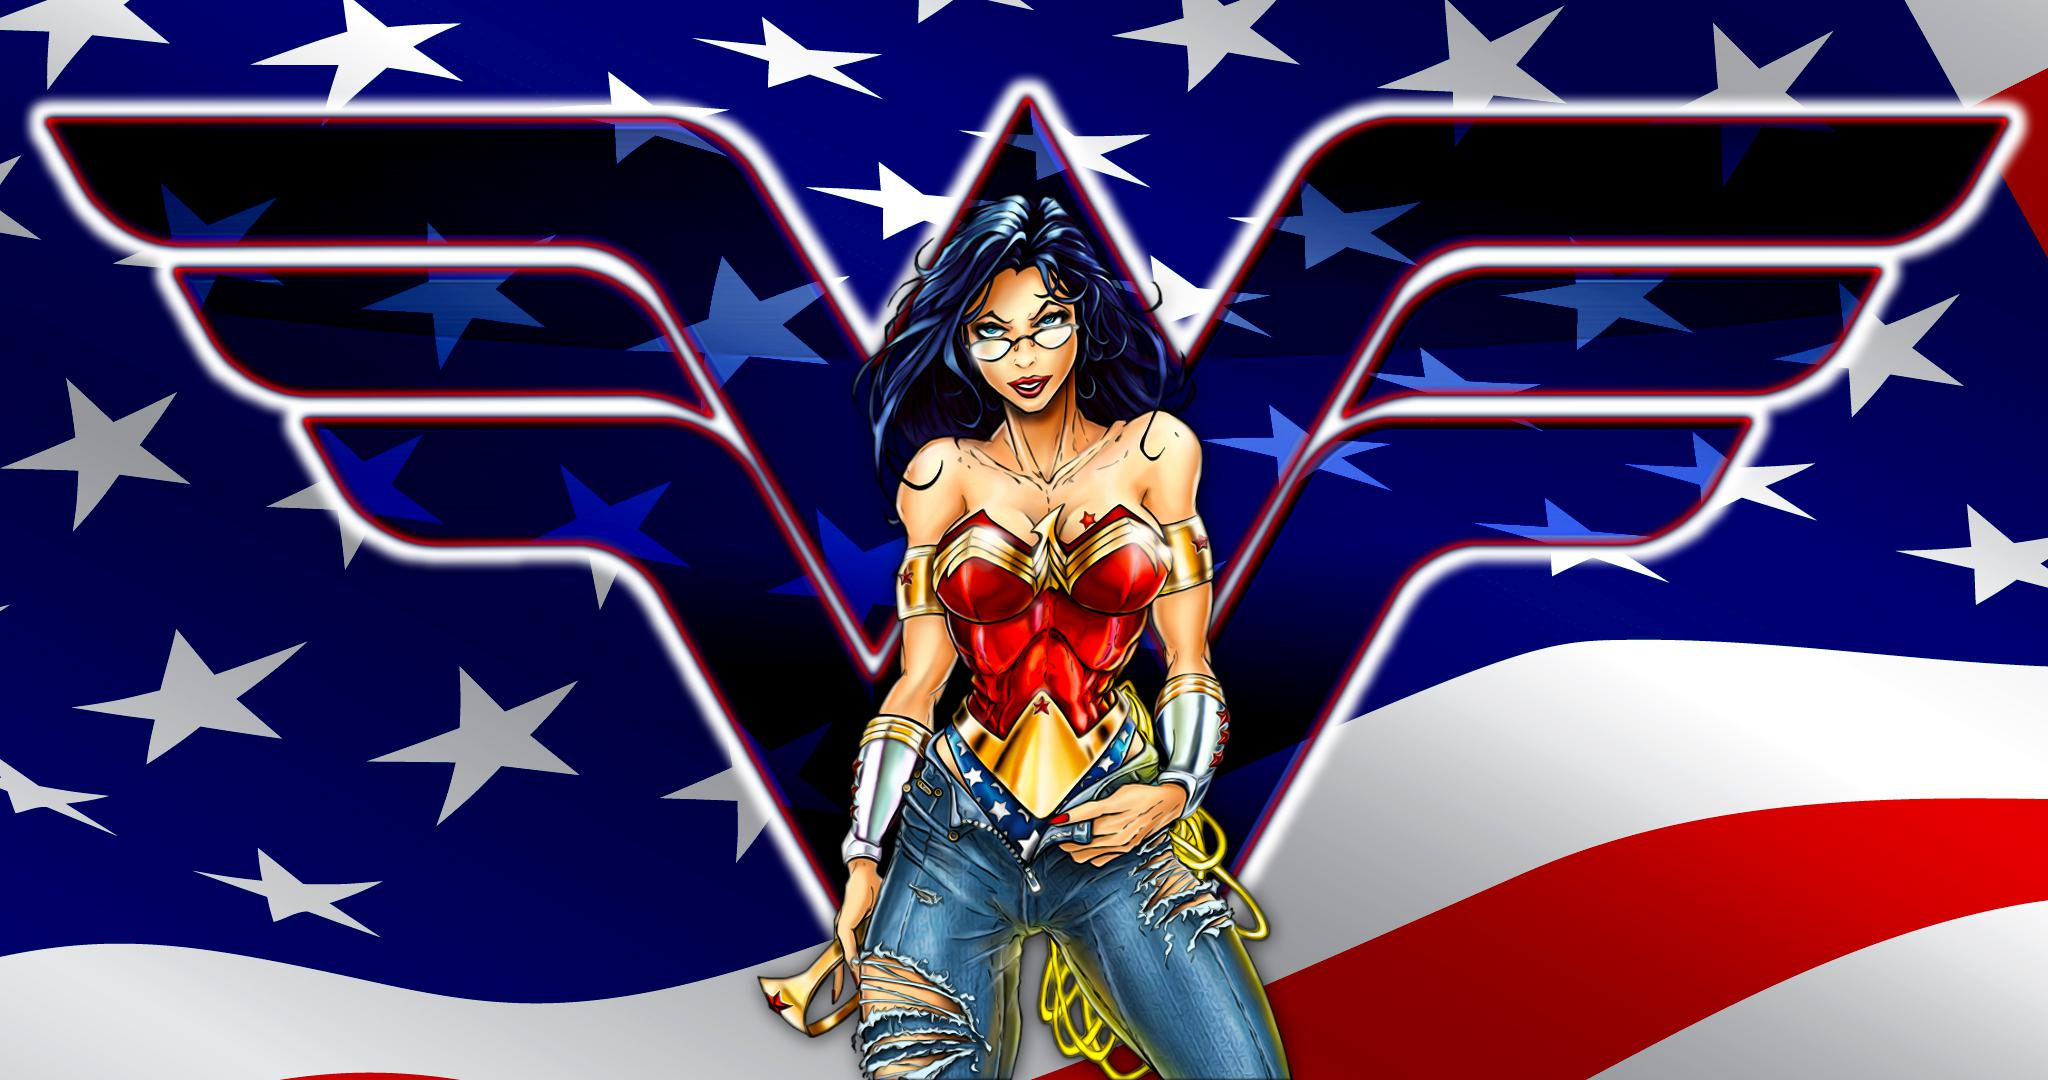 Wonderwoman Live Wallpaper: Wonder Woman Wallpaper For Desktop